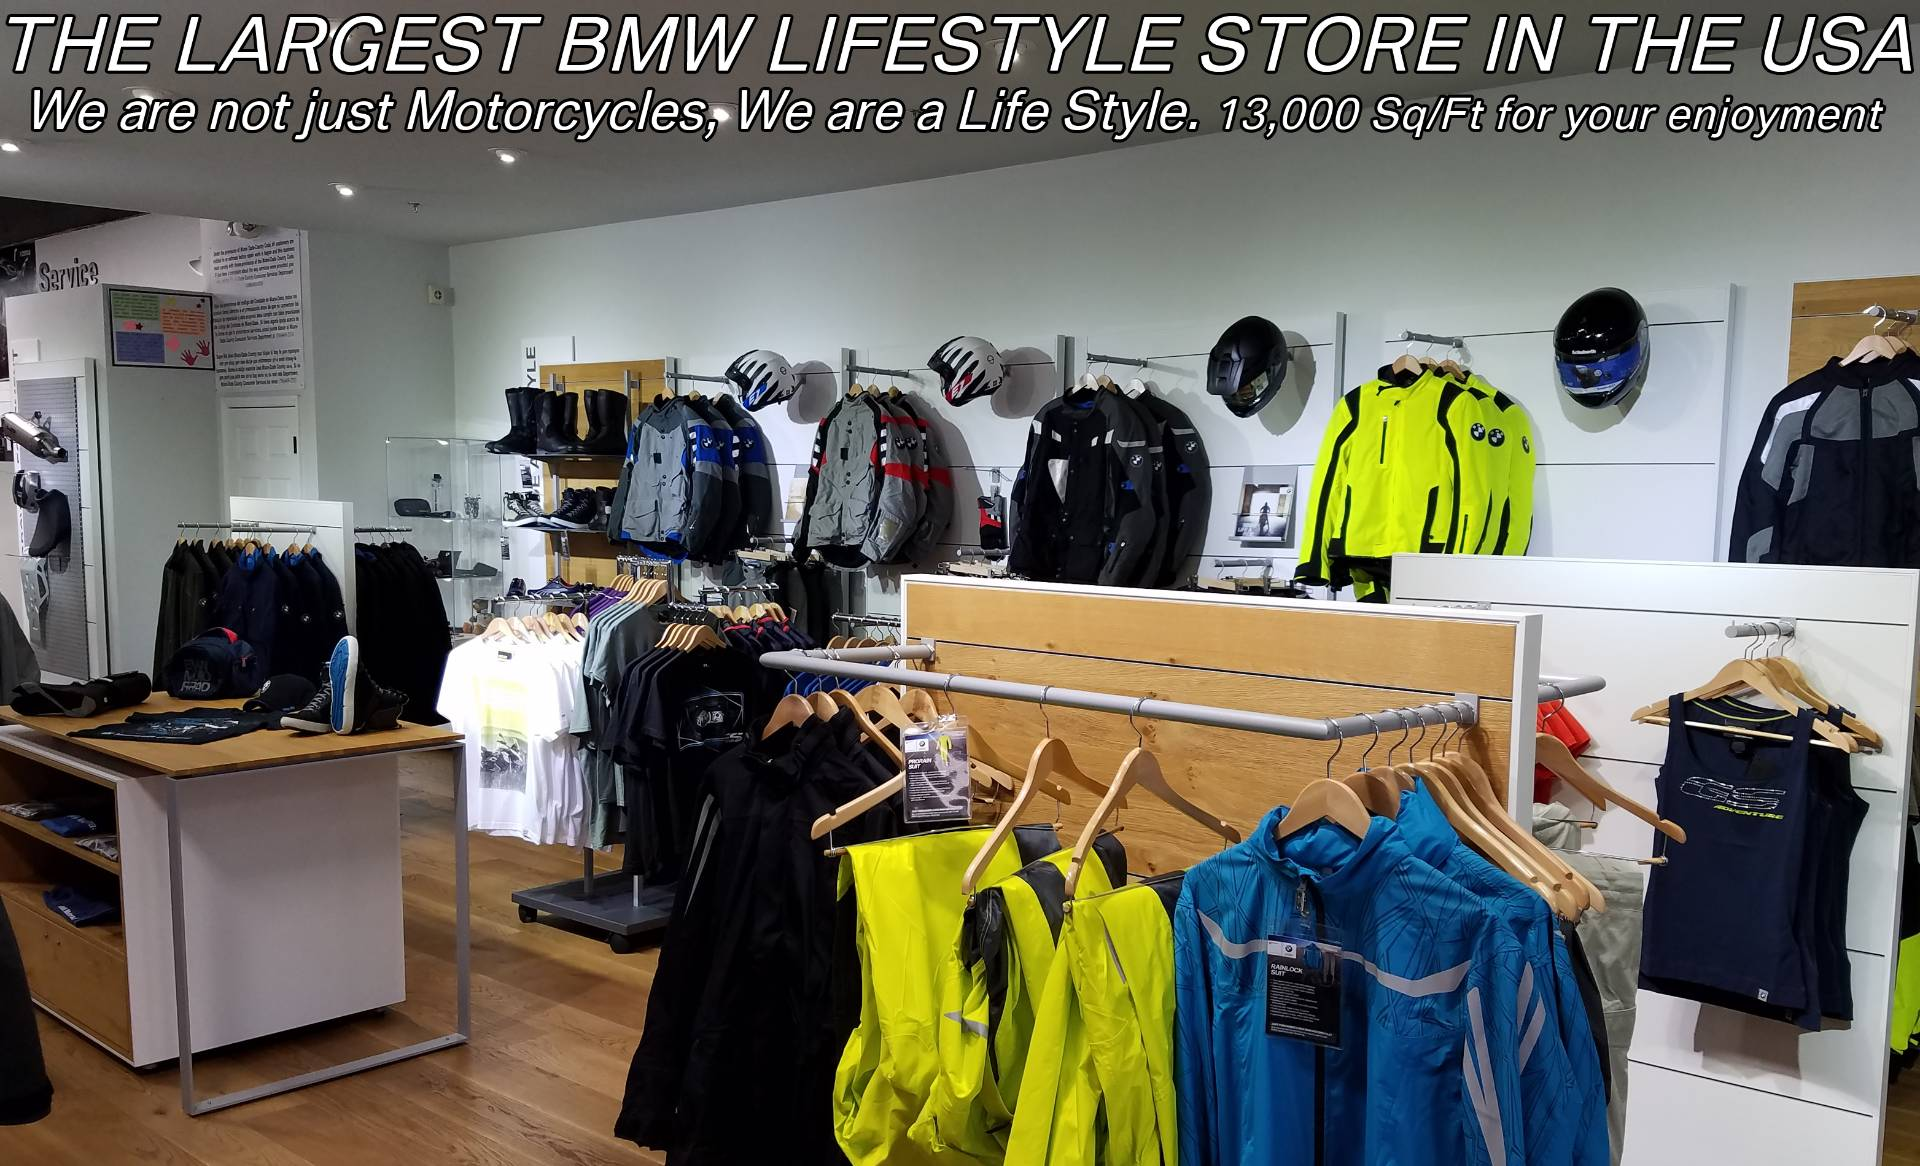 New 2019 BMW R 1250 GS for sale, BMW for sale R 1250GS, BMW Motorcycle R1250GS, new BMW 1250GS, R1250GS, BMW. BMW Motorcycles of Miami, Motorcycles of Miami - Photo 74